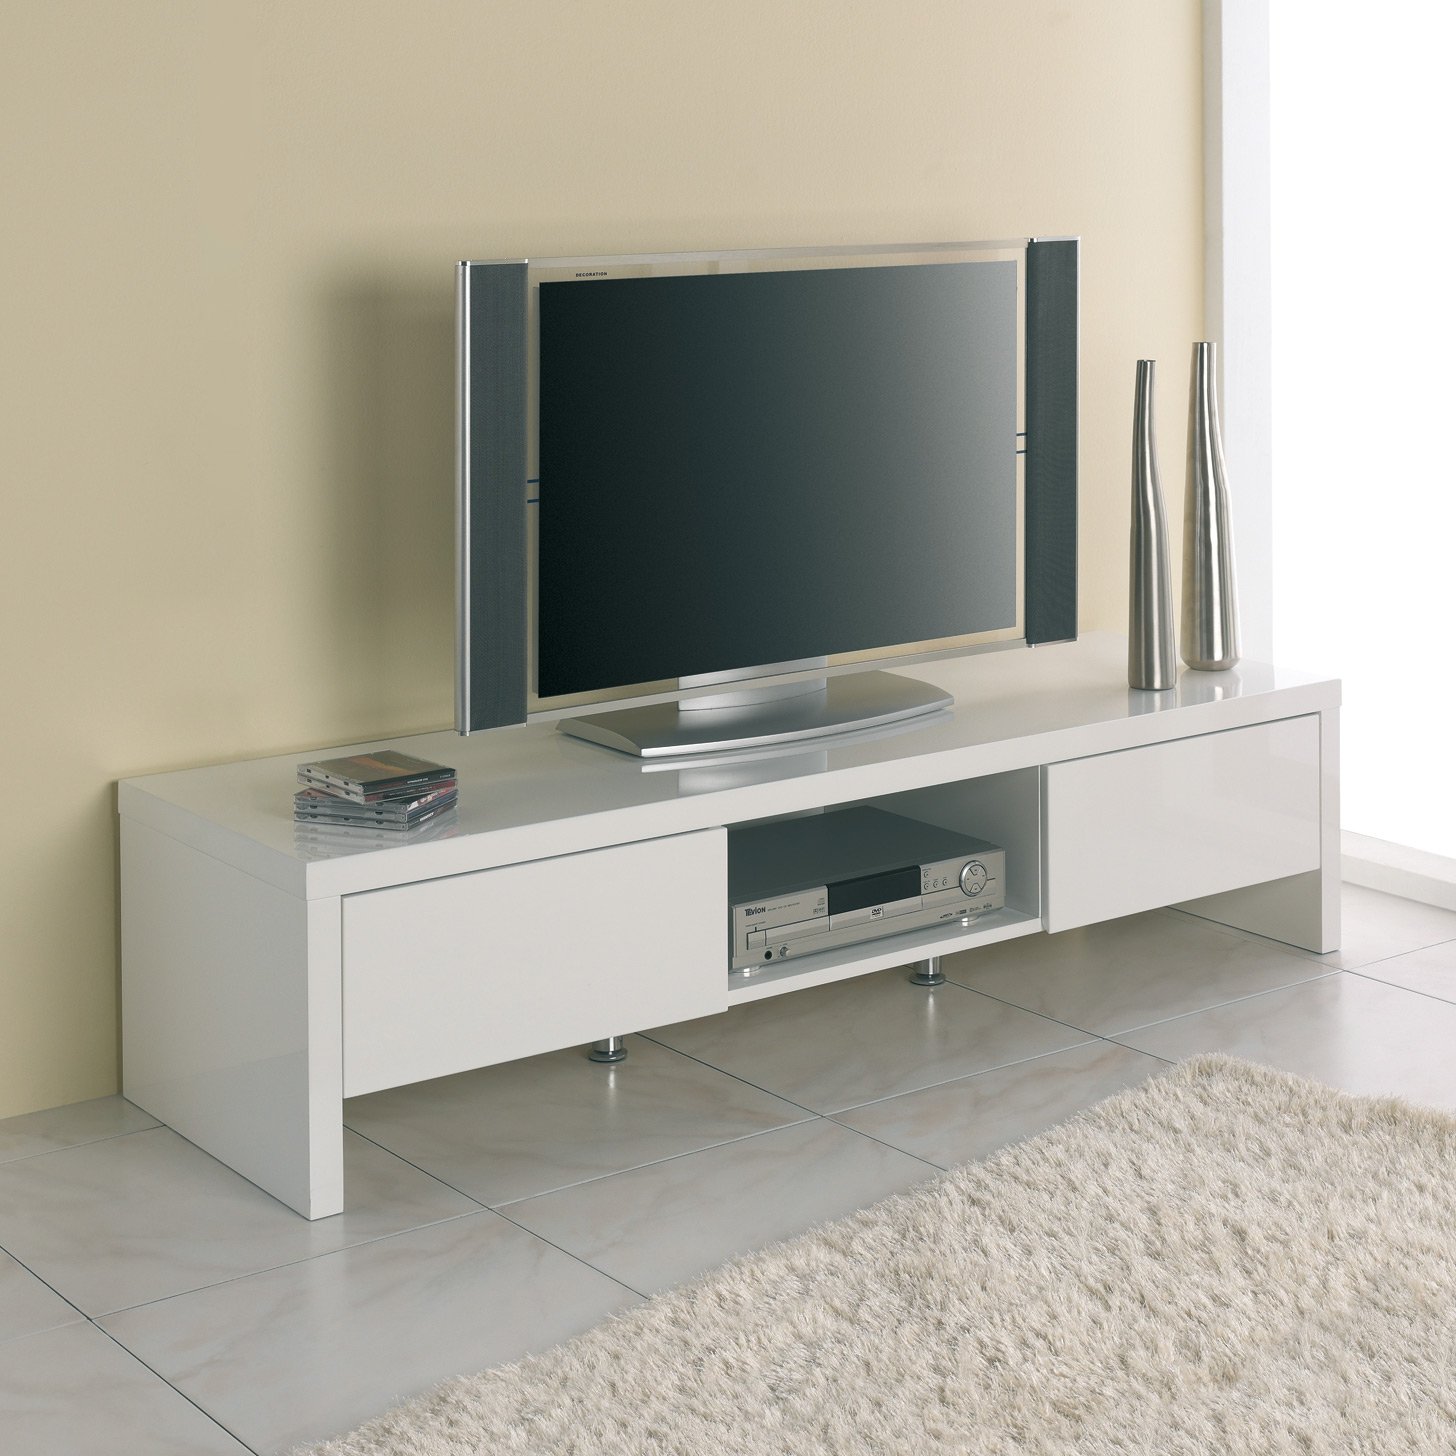 meuble tv hauteur 100 cm mobilier design d coration d 39 int rieur. Black Bedroom Furniture Sets. Home Design Ideas